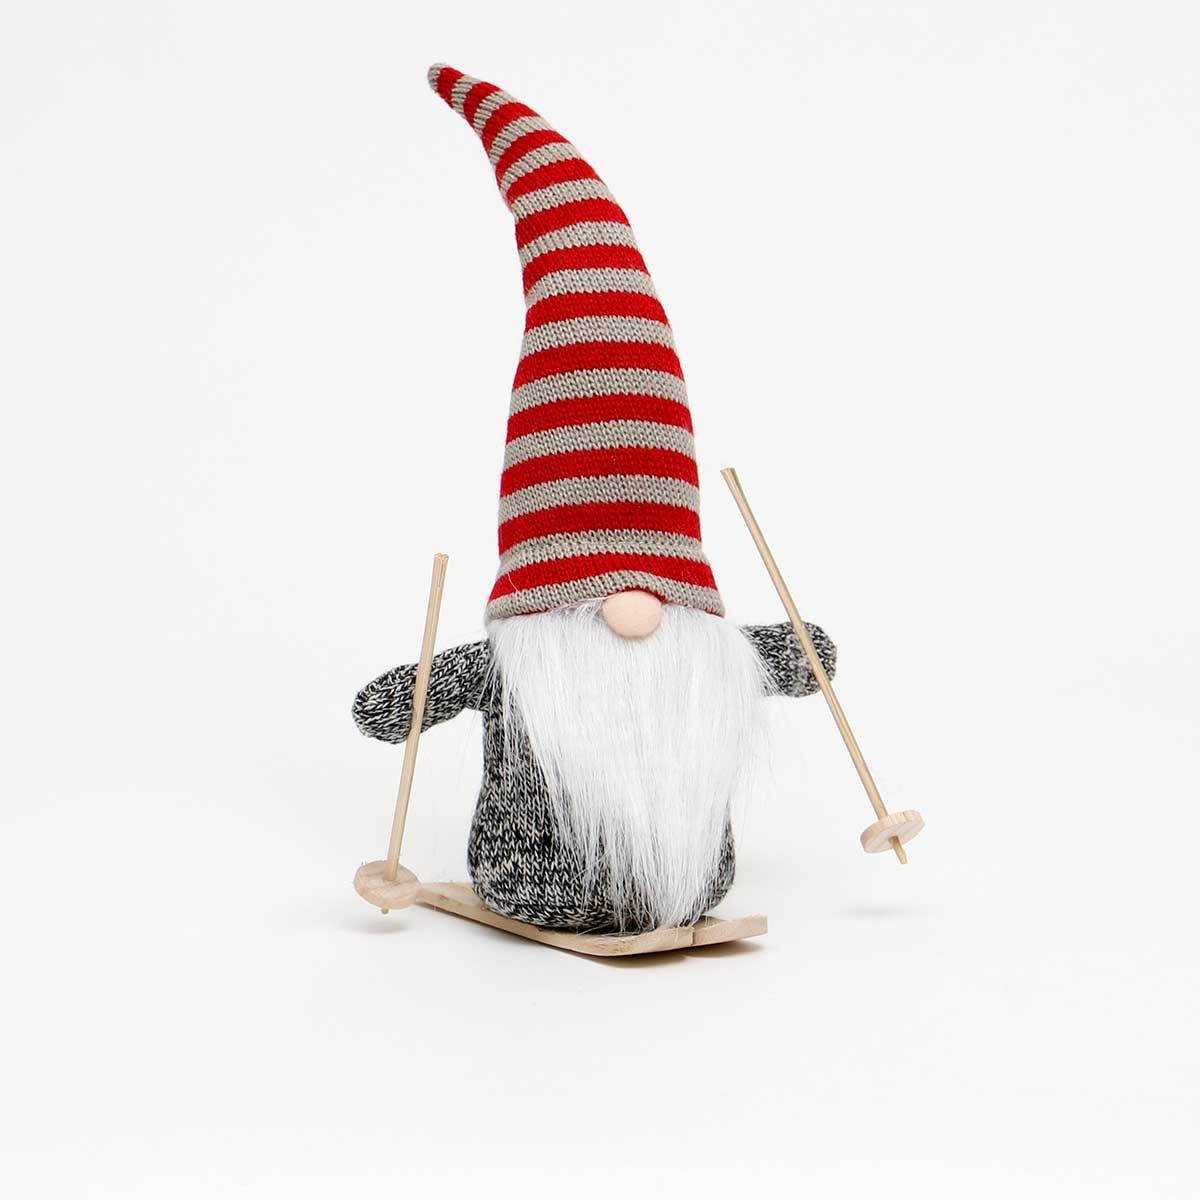 KRIS GNOME WITH RED/WHITE STRIPE HAT ON SKIS